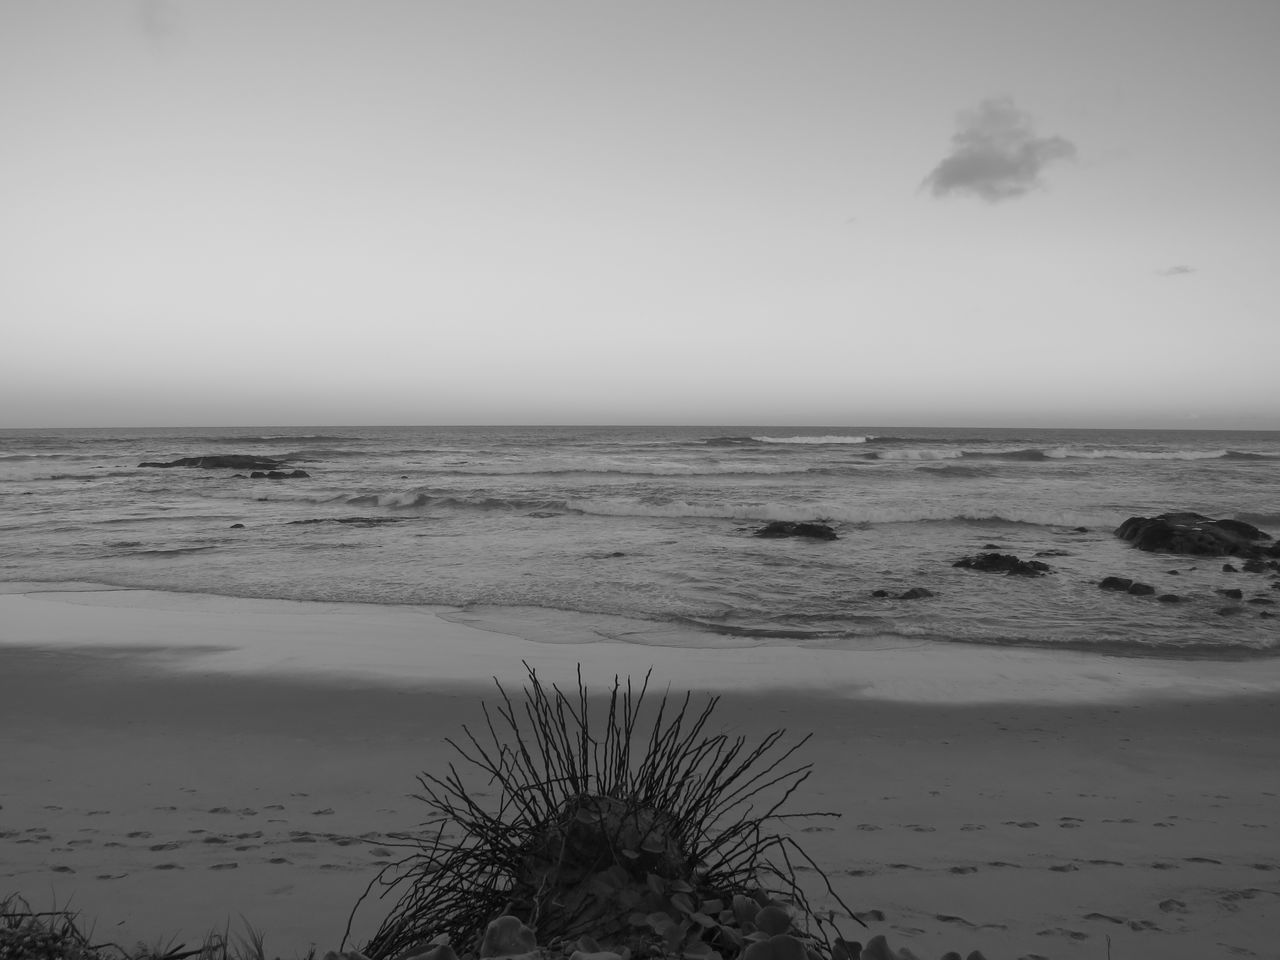 Beach black and white Sea Nature Water Horizon Over Water Scenics Tranquil Scene Beauty In Nature Sky Tranquility Beach Sand Outdoors No People Day Tree Clear Sky Landscape Beauty In Nature Black And White Photography Beachphotography Beachblackandwhite Skyandclouds  Beachtime Sun Clouds And Sky